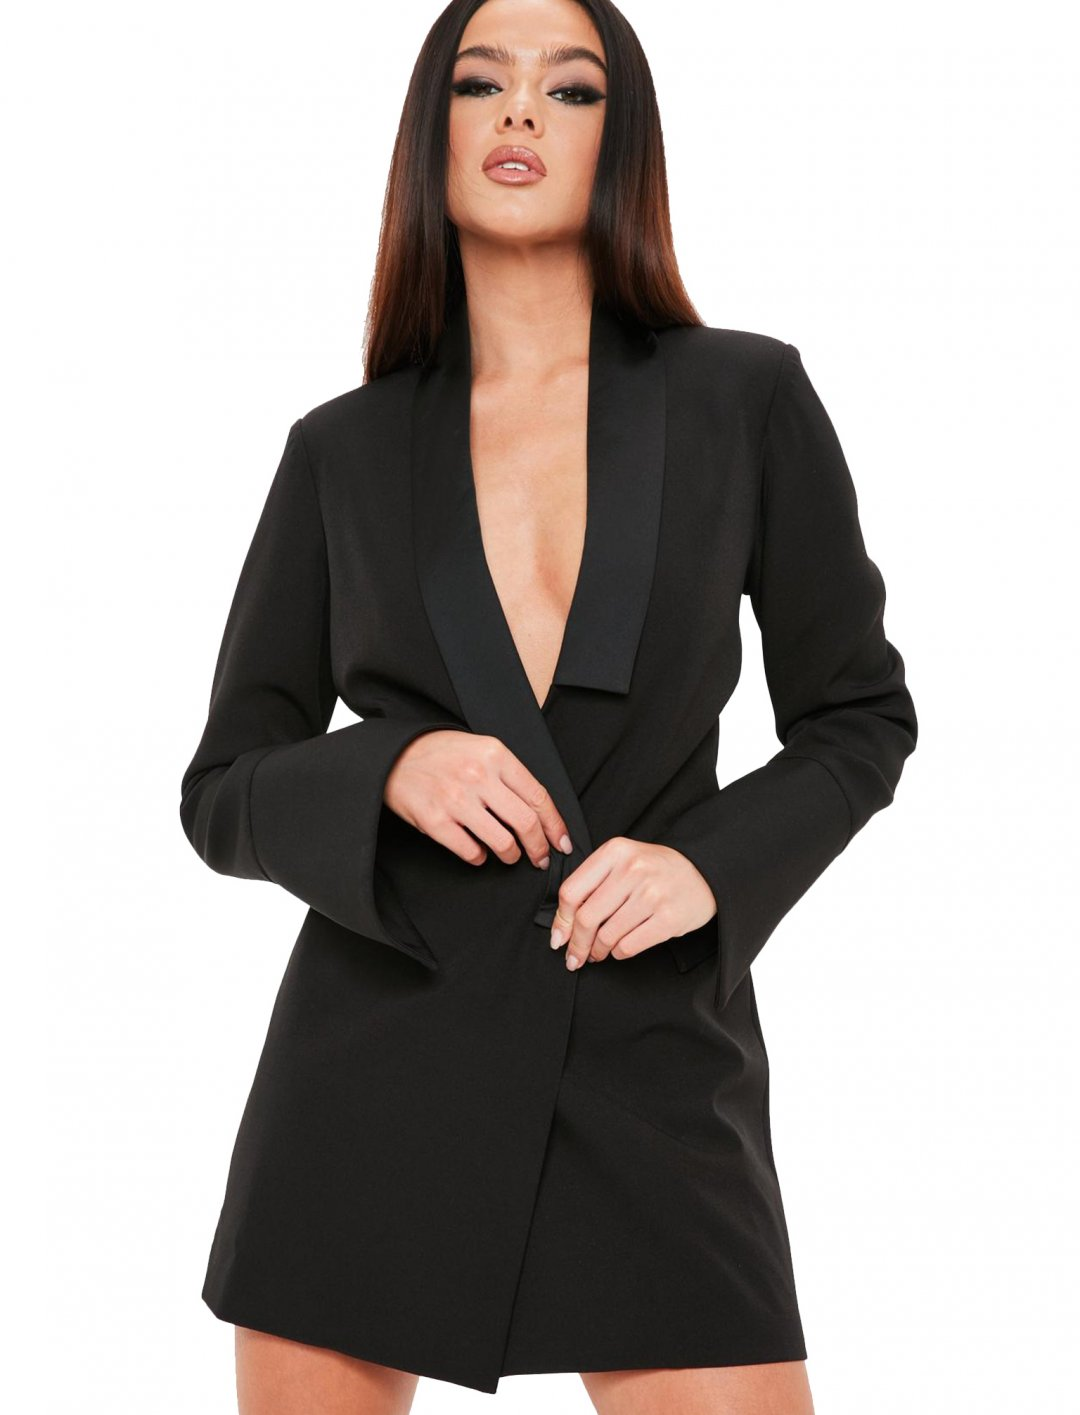 """Madison Beer x Missguided Blazer Dress {""""id"""":5,""""product_section_id"""":1,""""name"""":""""Clothing"""",""""order"""":5} Madison Beer x Missguided"""